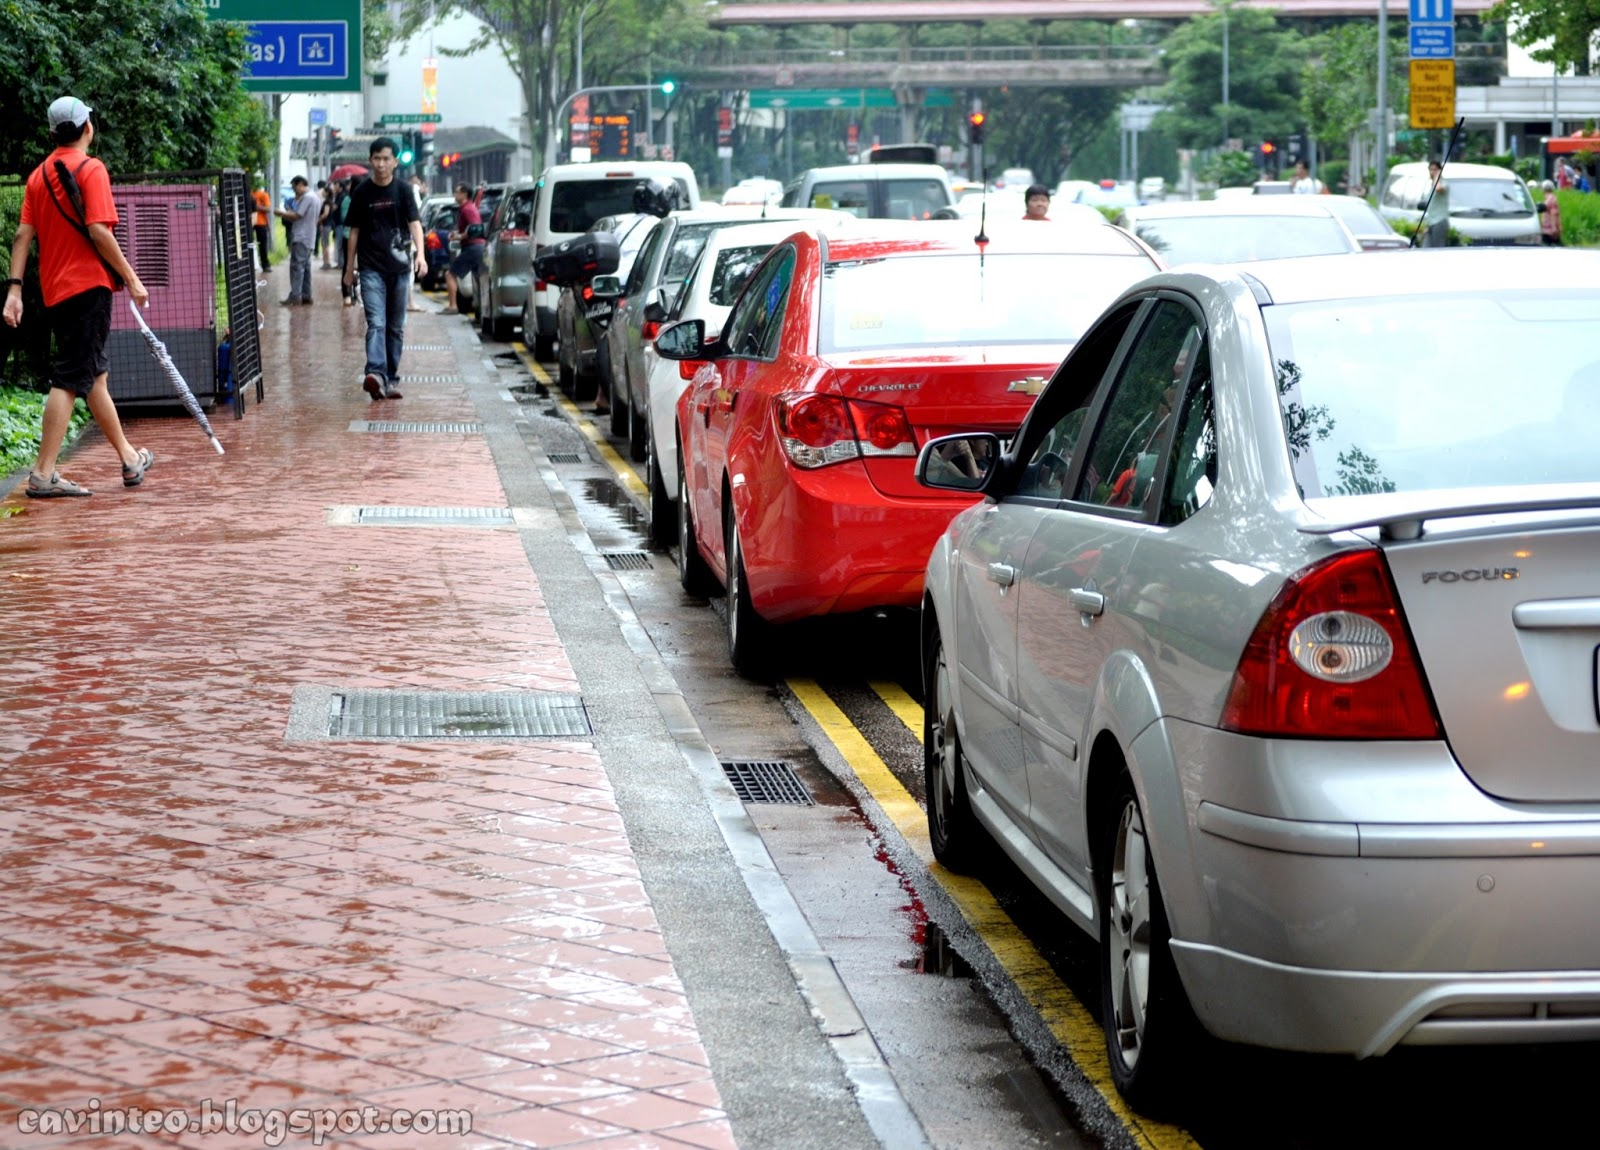 Year 2030 Cars Cars parked illegally on theYear 2030 Cars